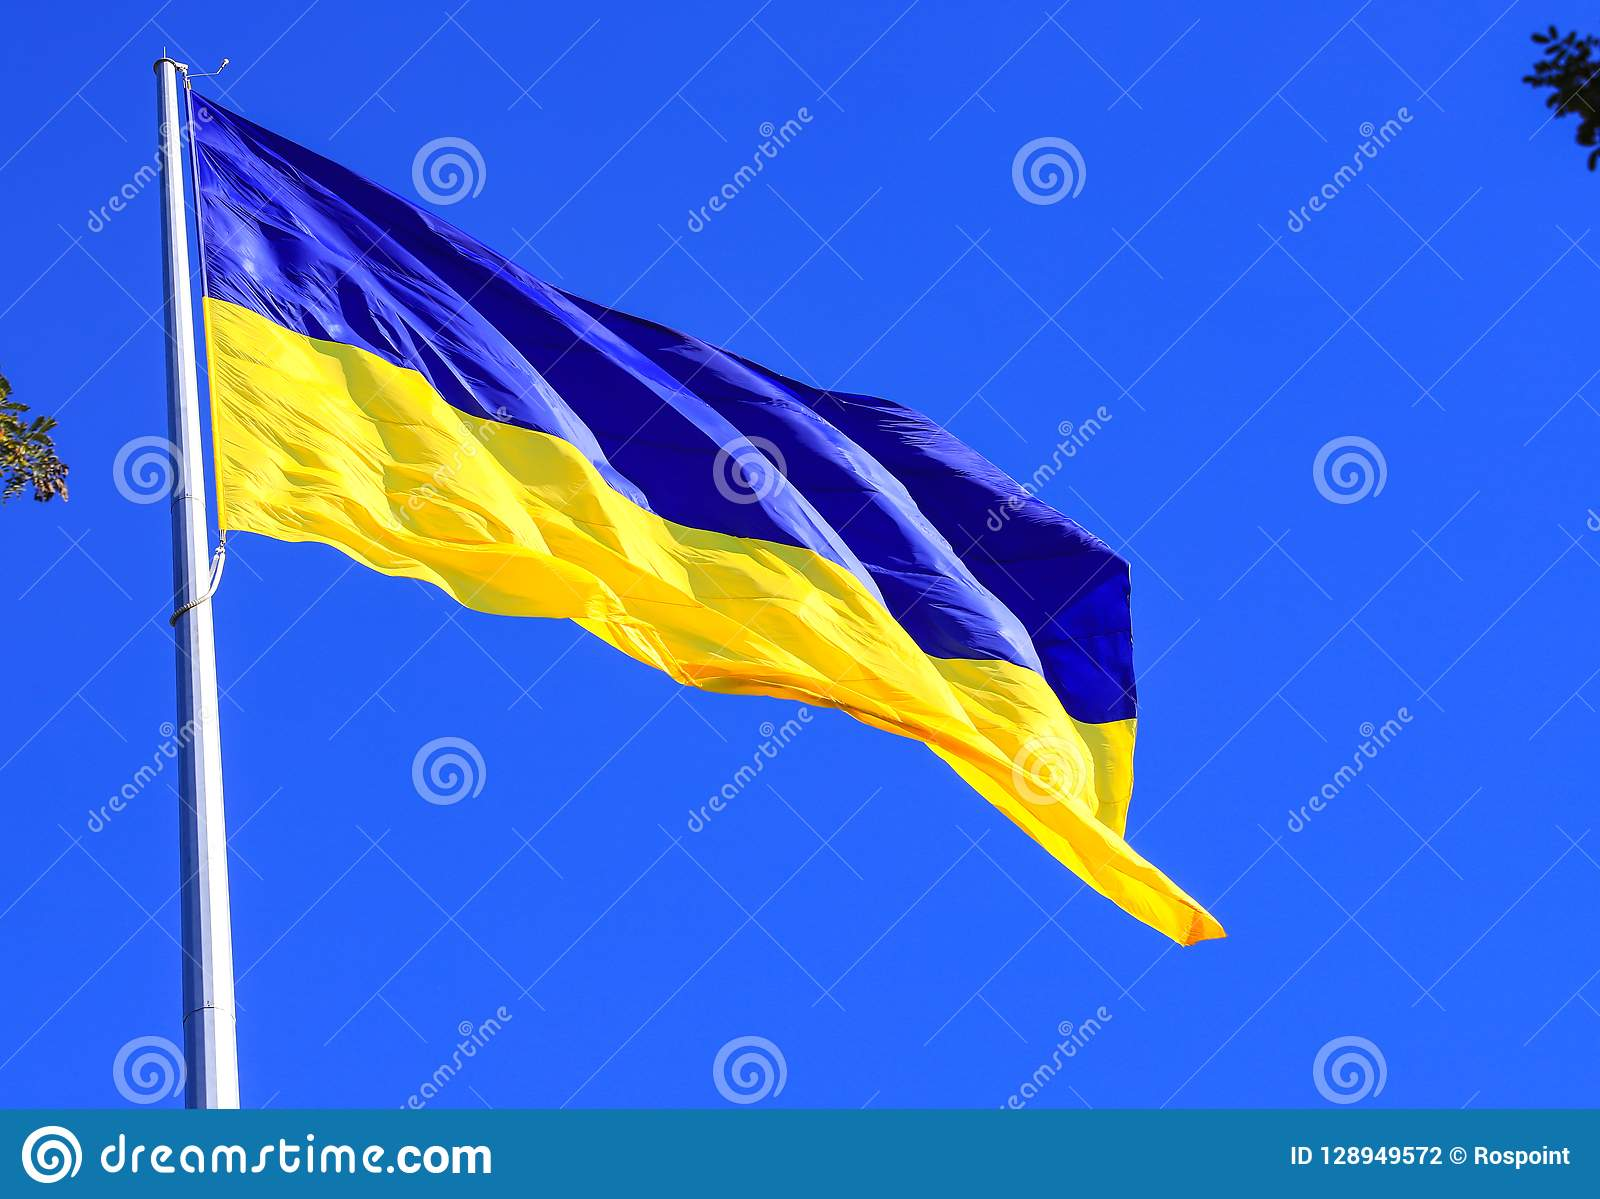 The largest yellow and blue state flag of Ukraine on the flagpole 30 meters in the Ukrainian Dnepr city